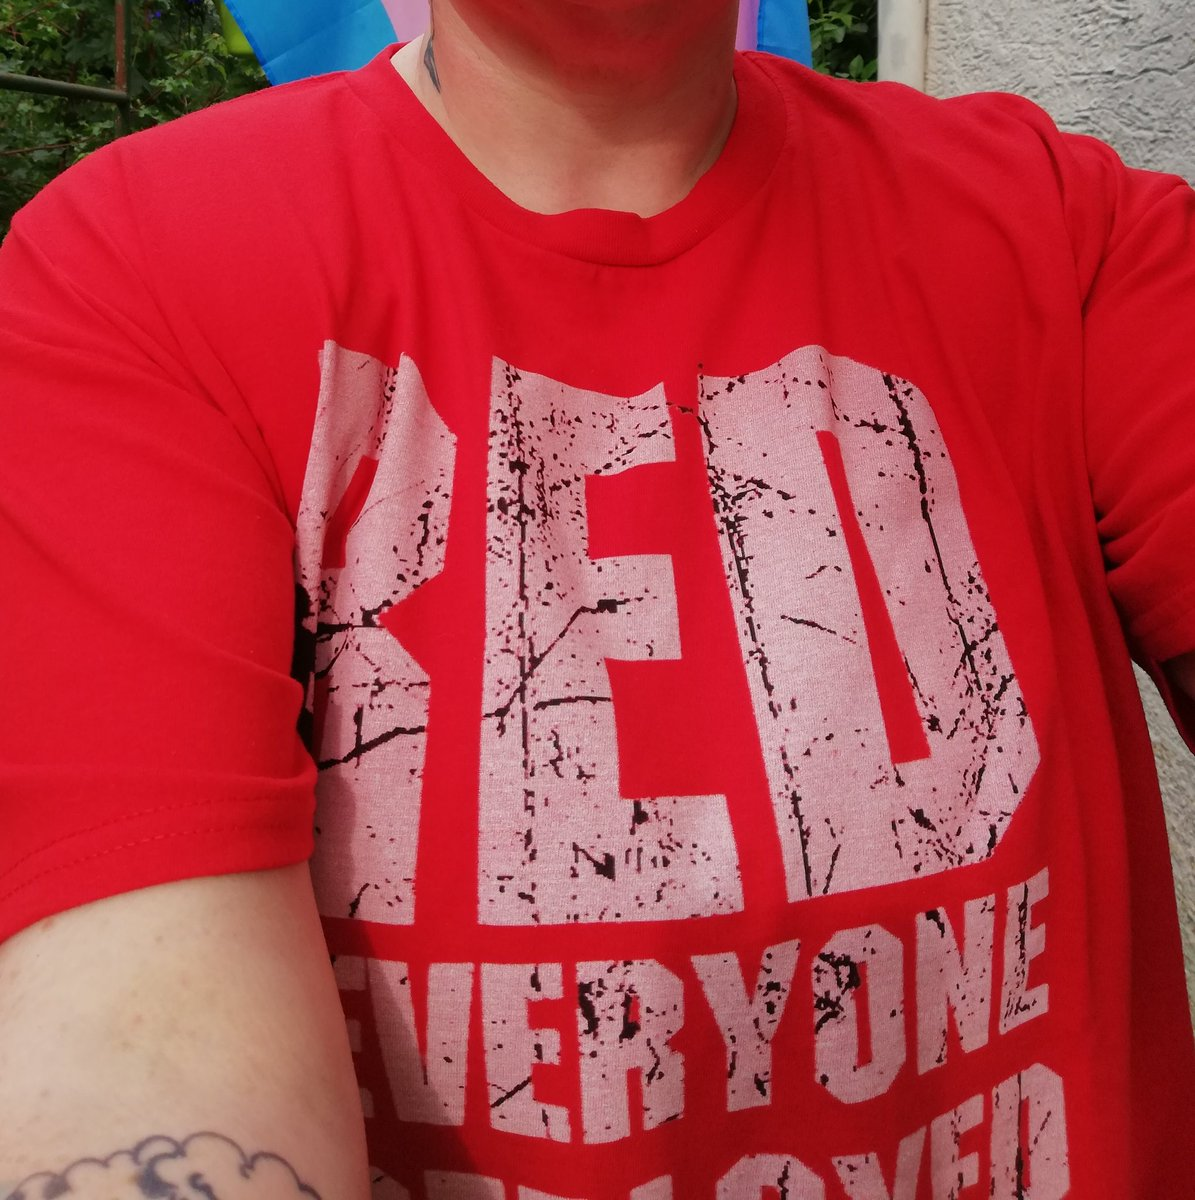 and it's another #REDFRIDAY   R.emember  E.veryone  D.eployed until they all come home <br>http://pic.twitter.com/20uPyr2Zew